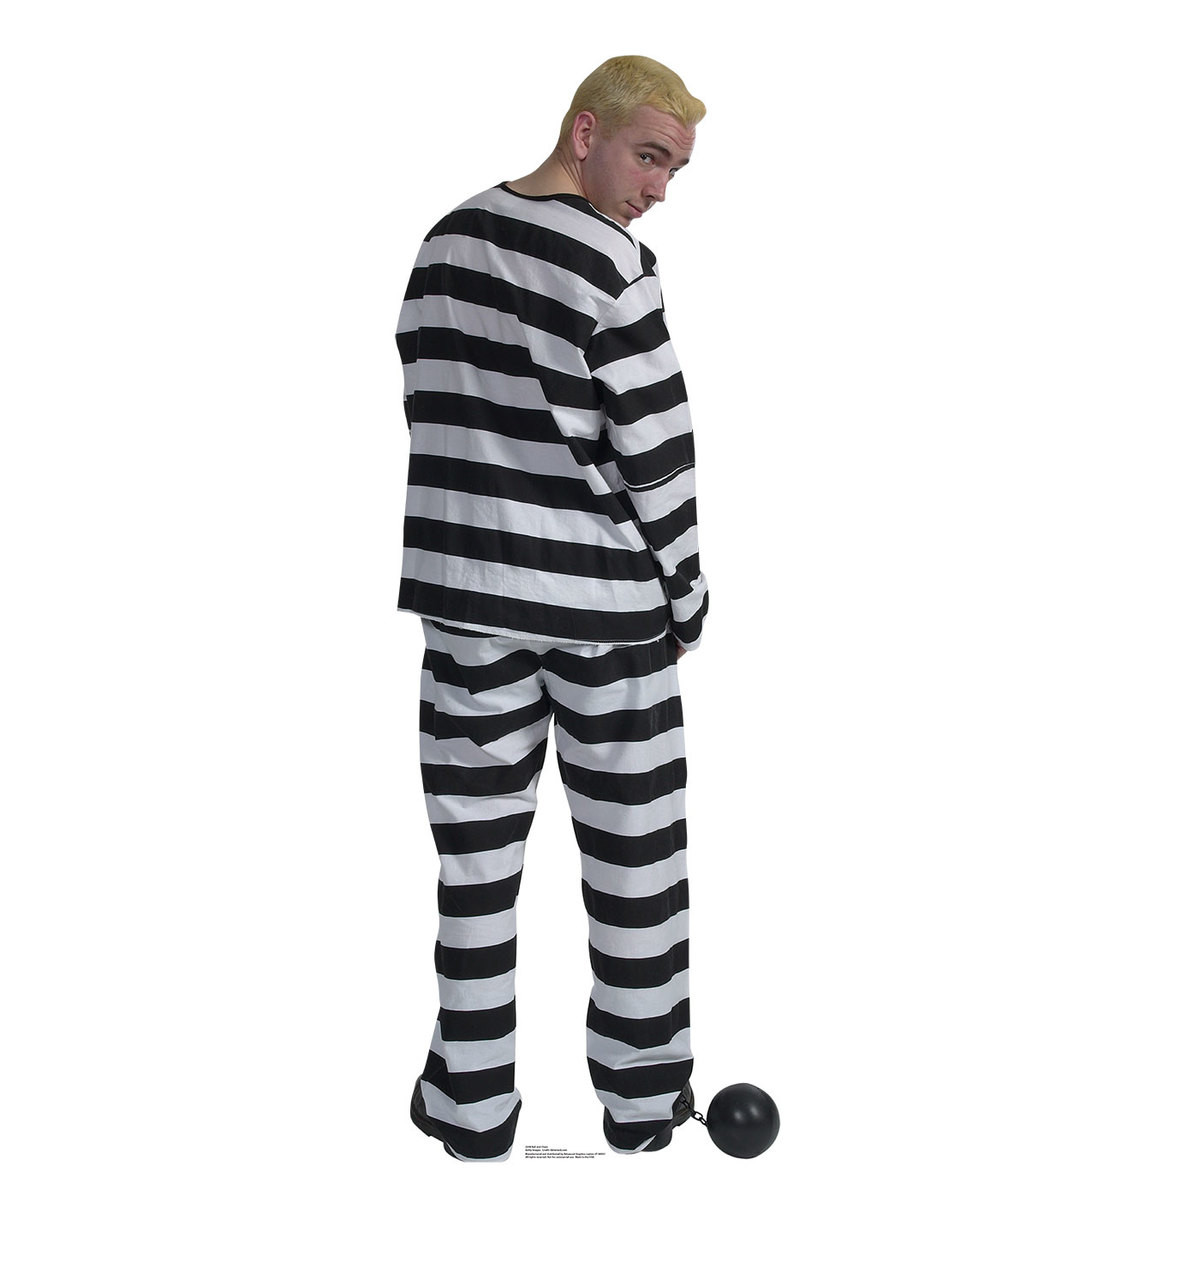 Life-size Prisoner in Striped Suit with Ball and Chain Cardboard Standup 3